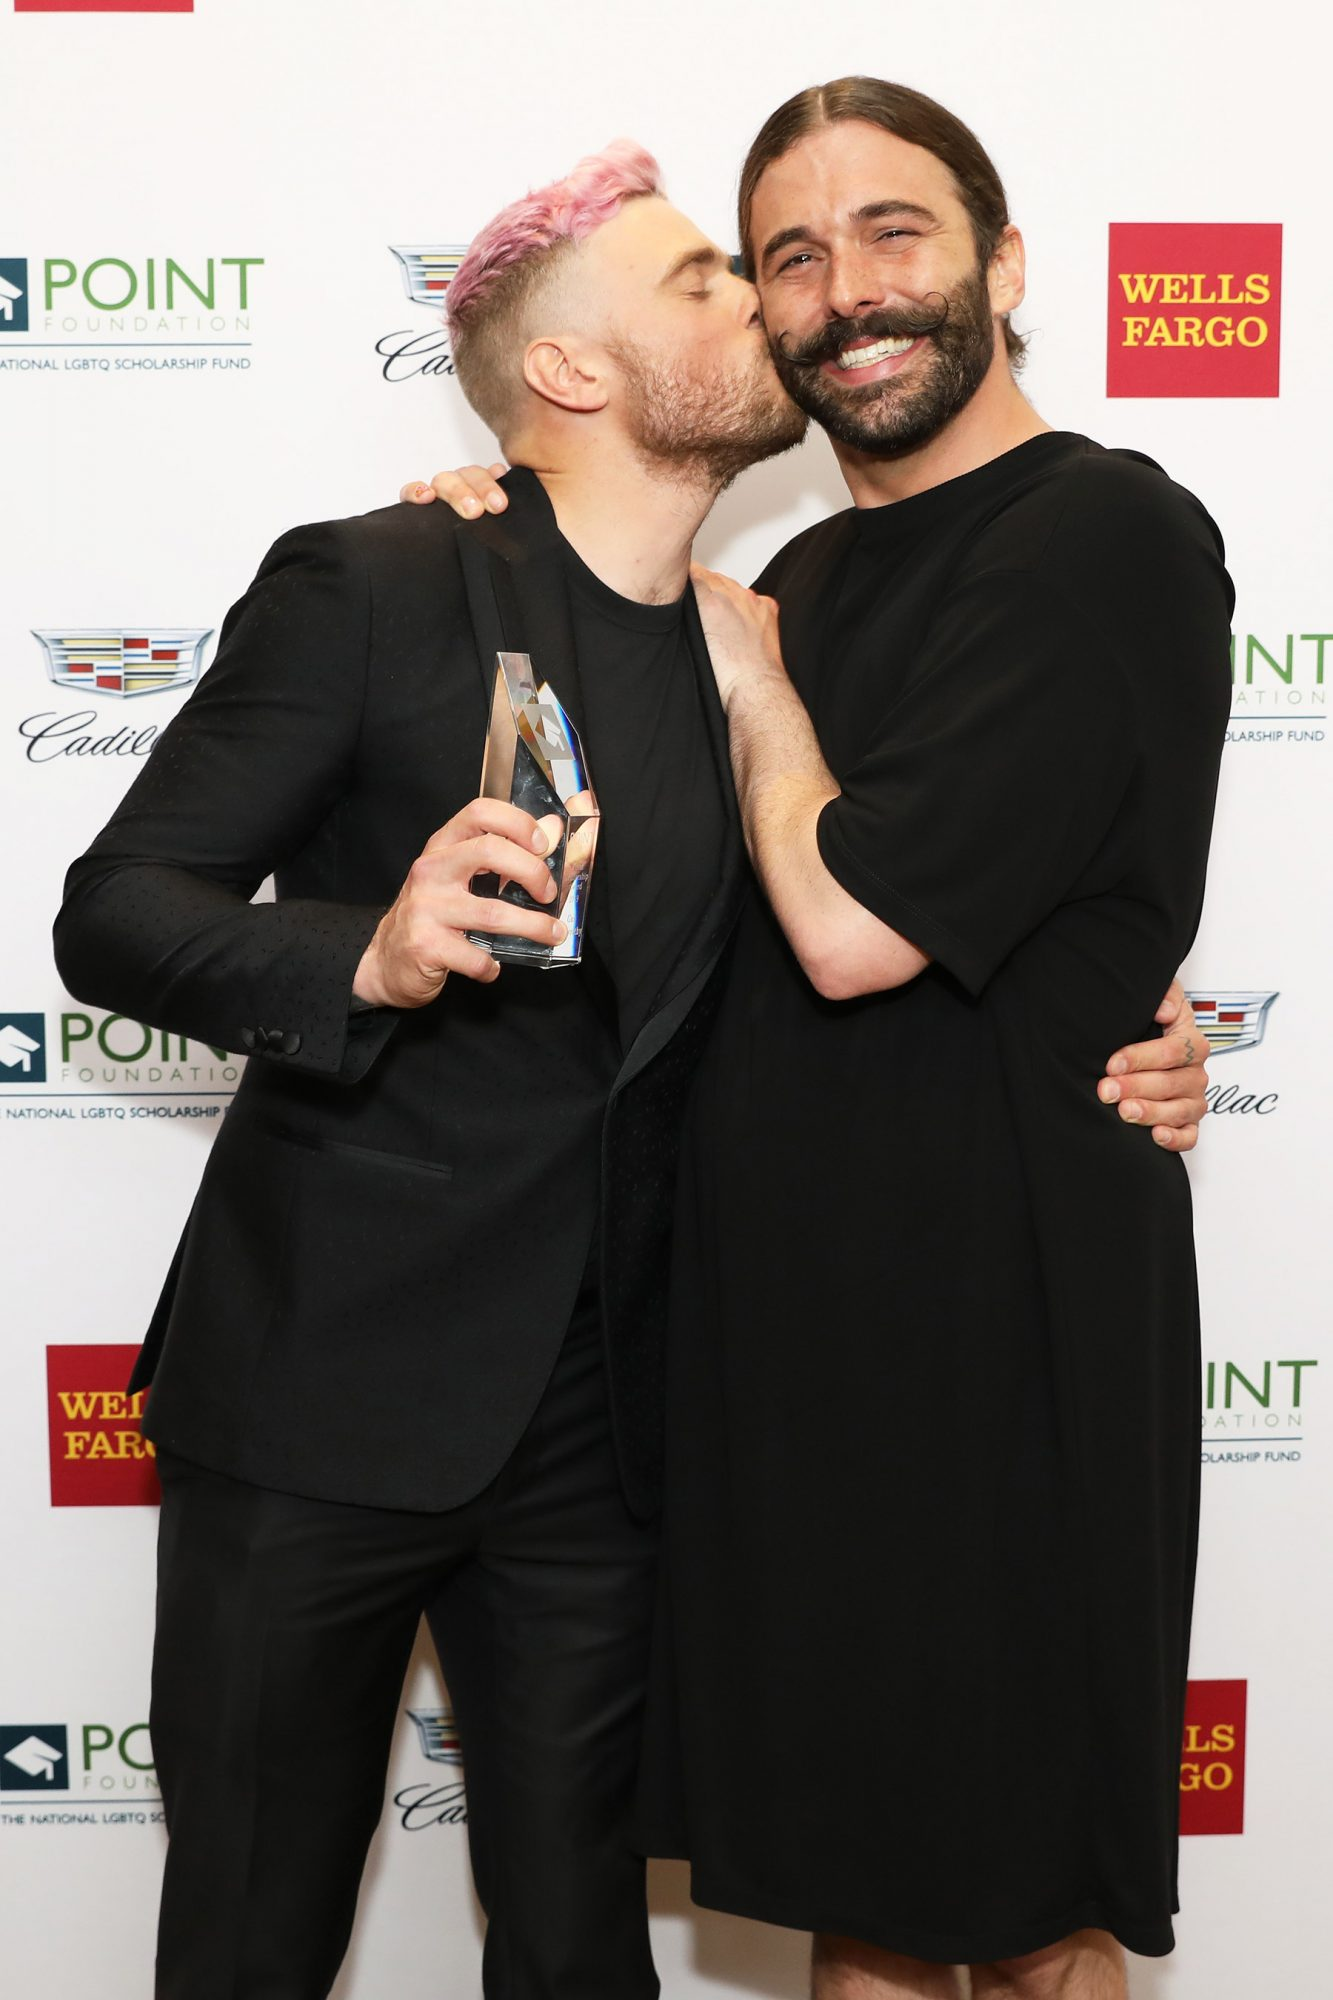 BESTPIX - Celebrities Support LGBTQ Education At Point Honors Gala New York